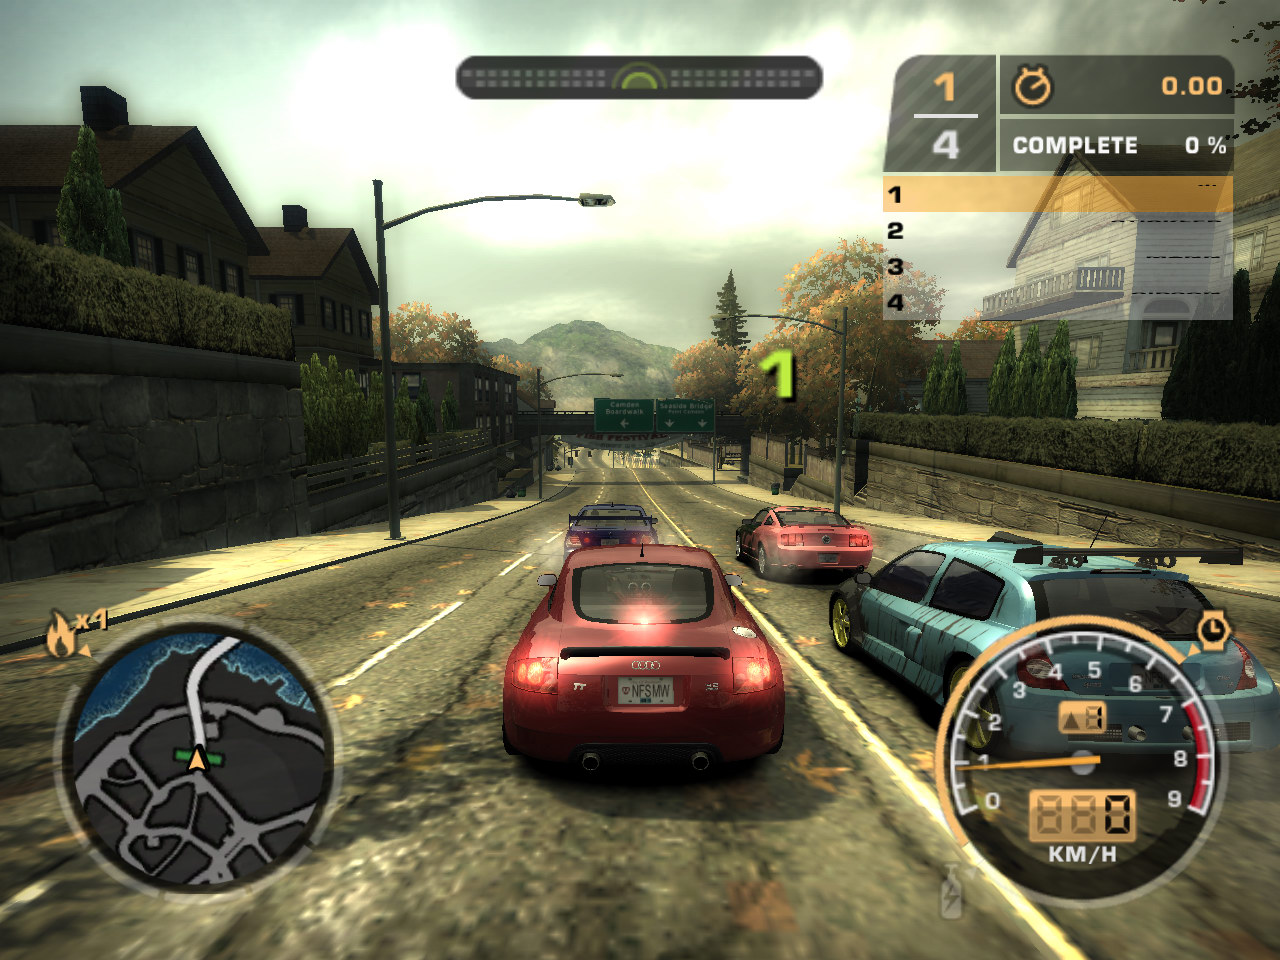 Секс в игре need for speed most wanted 2005 видео